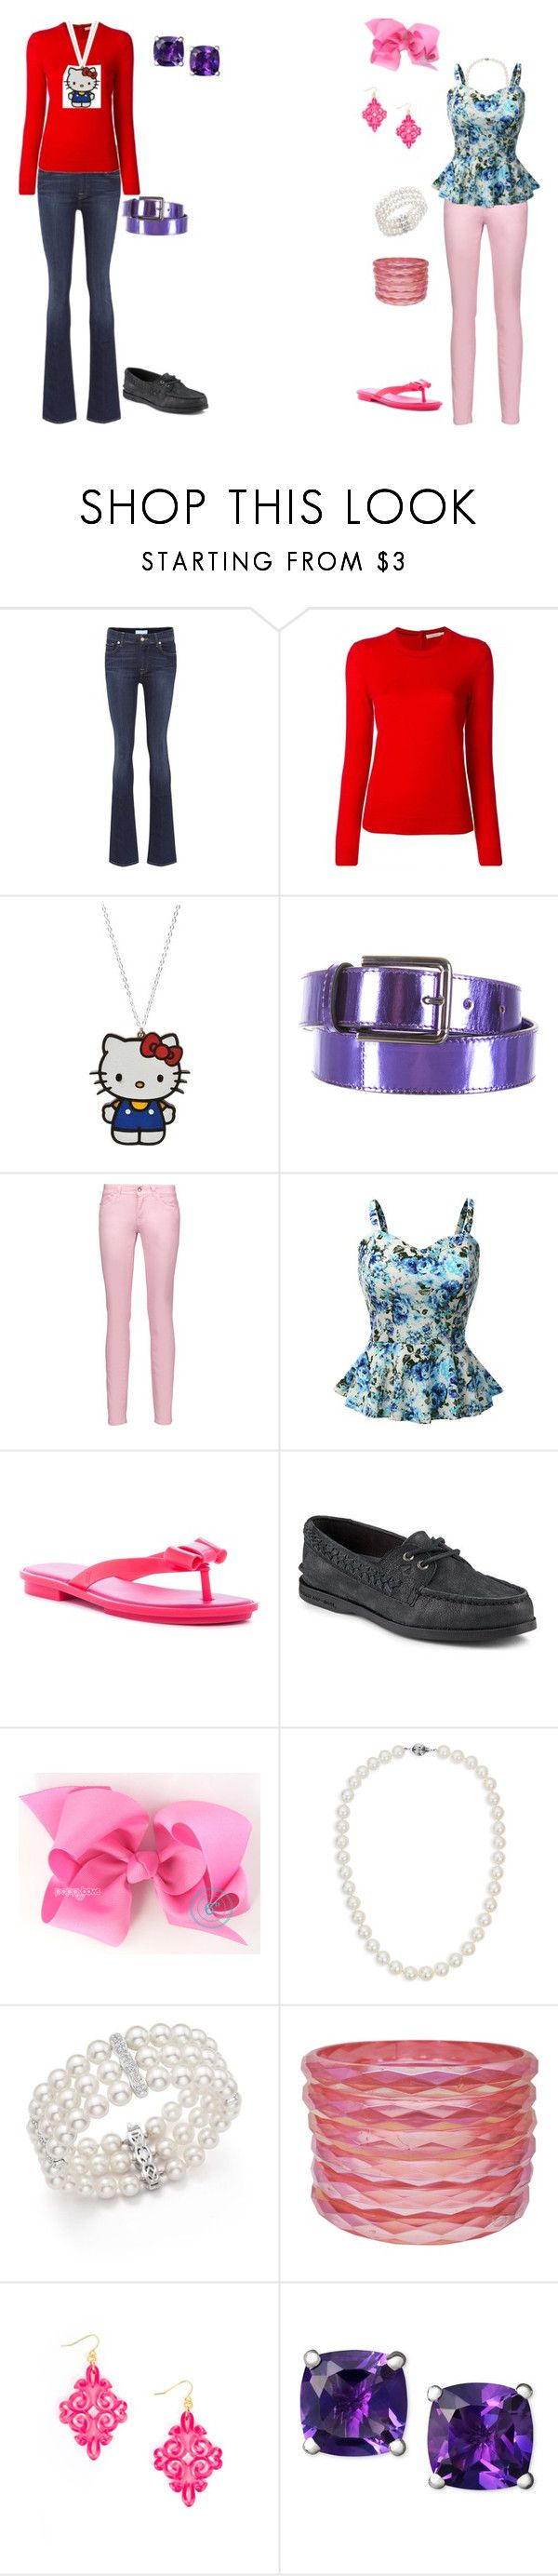 """""""Girly Girl vs Tomboy: Ice cream truck outfits"""" by sierra-ivy on Polyvore featuring 7 For All Mankind, Tory Burch, Hello Kitty, Ports 1961, Just Cavalli, Doublju, Melissa, Sperry, Blue Nile and Bloomingdale's"""